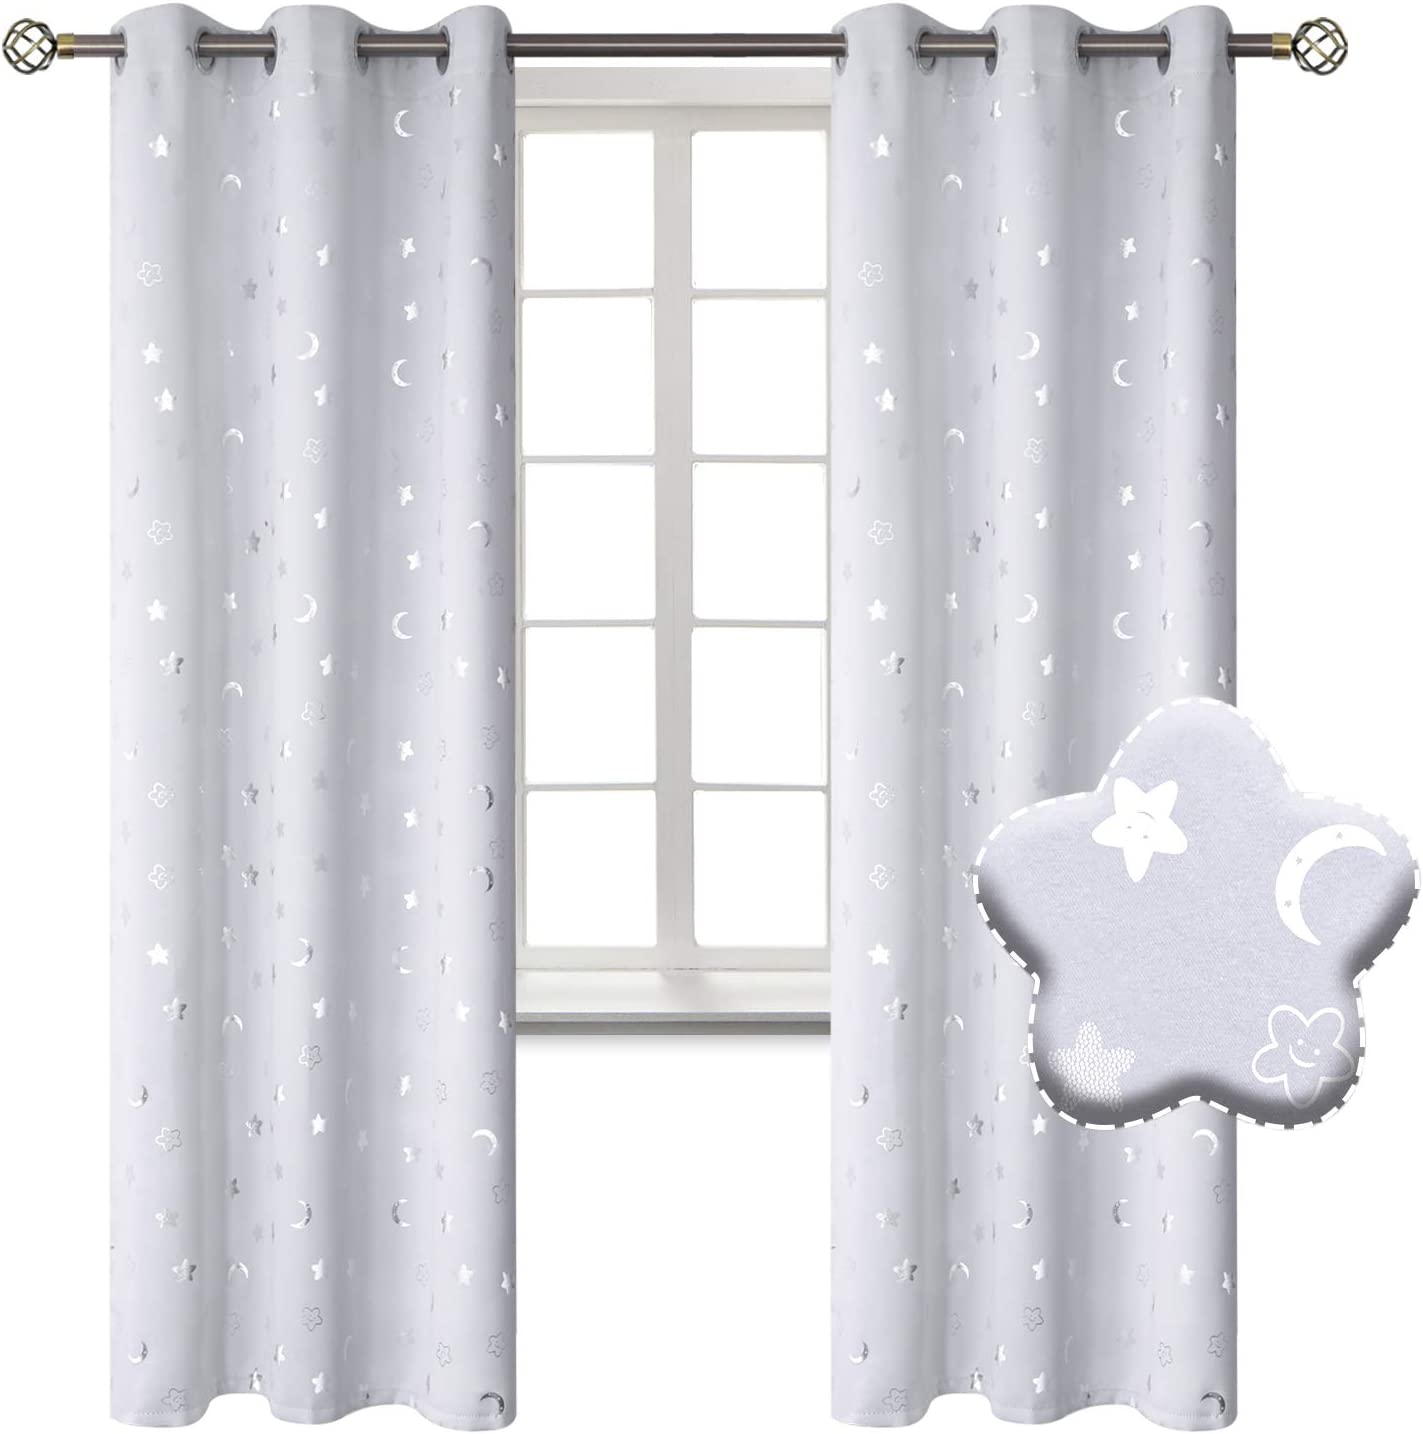 BGment Moon and Stars Blackout Curtains for Kids Bedroom, Grommet Thermal Insulated Room Darkening Printed Nursery Curtains, 2 Panels of 42 x 84 Inch, Greyish White